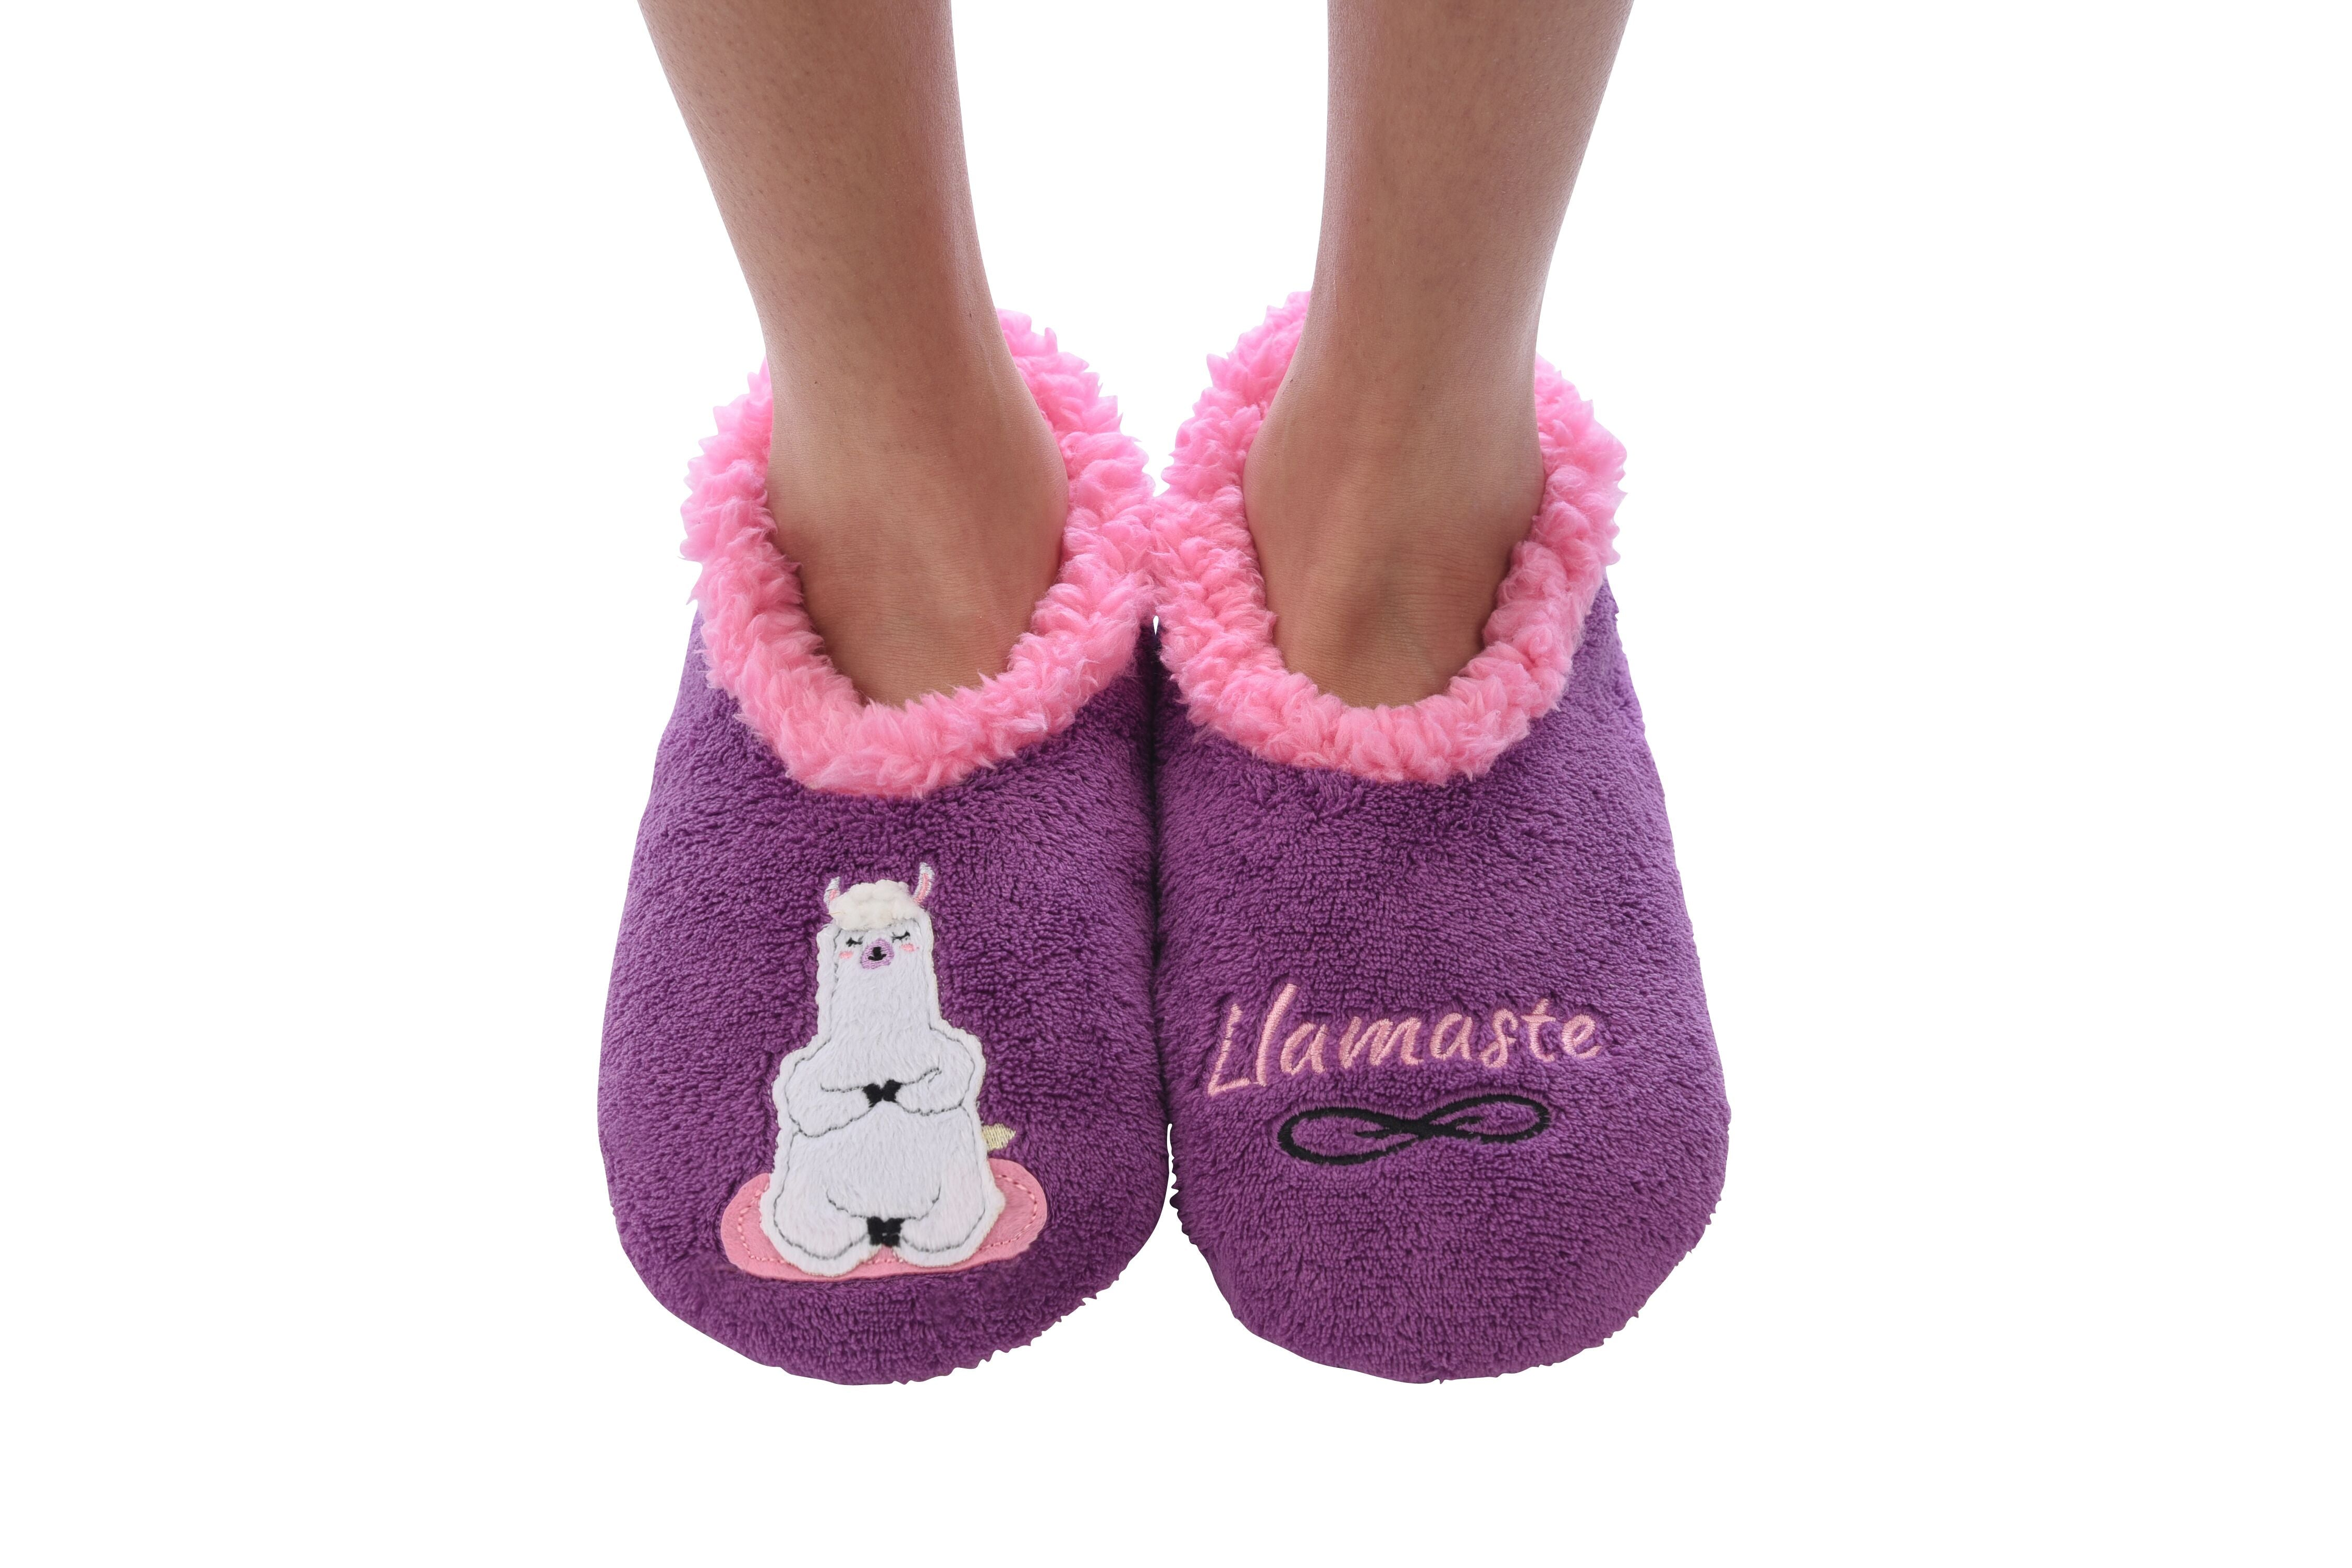 de62372be8e0 Snoozies! Slippers - Llamaste – Prep Obsessed